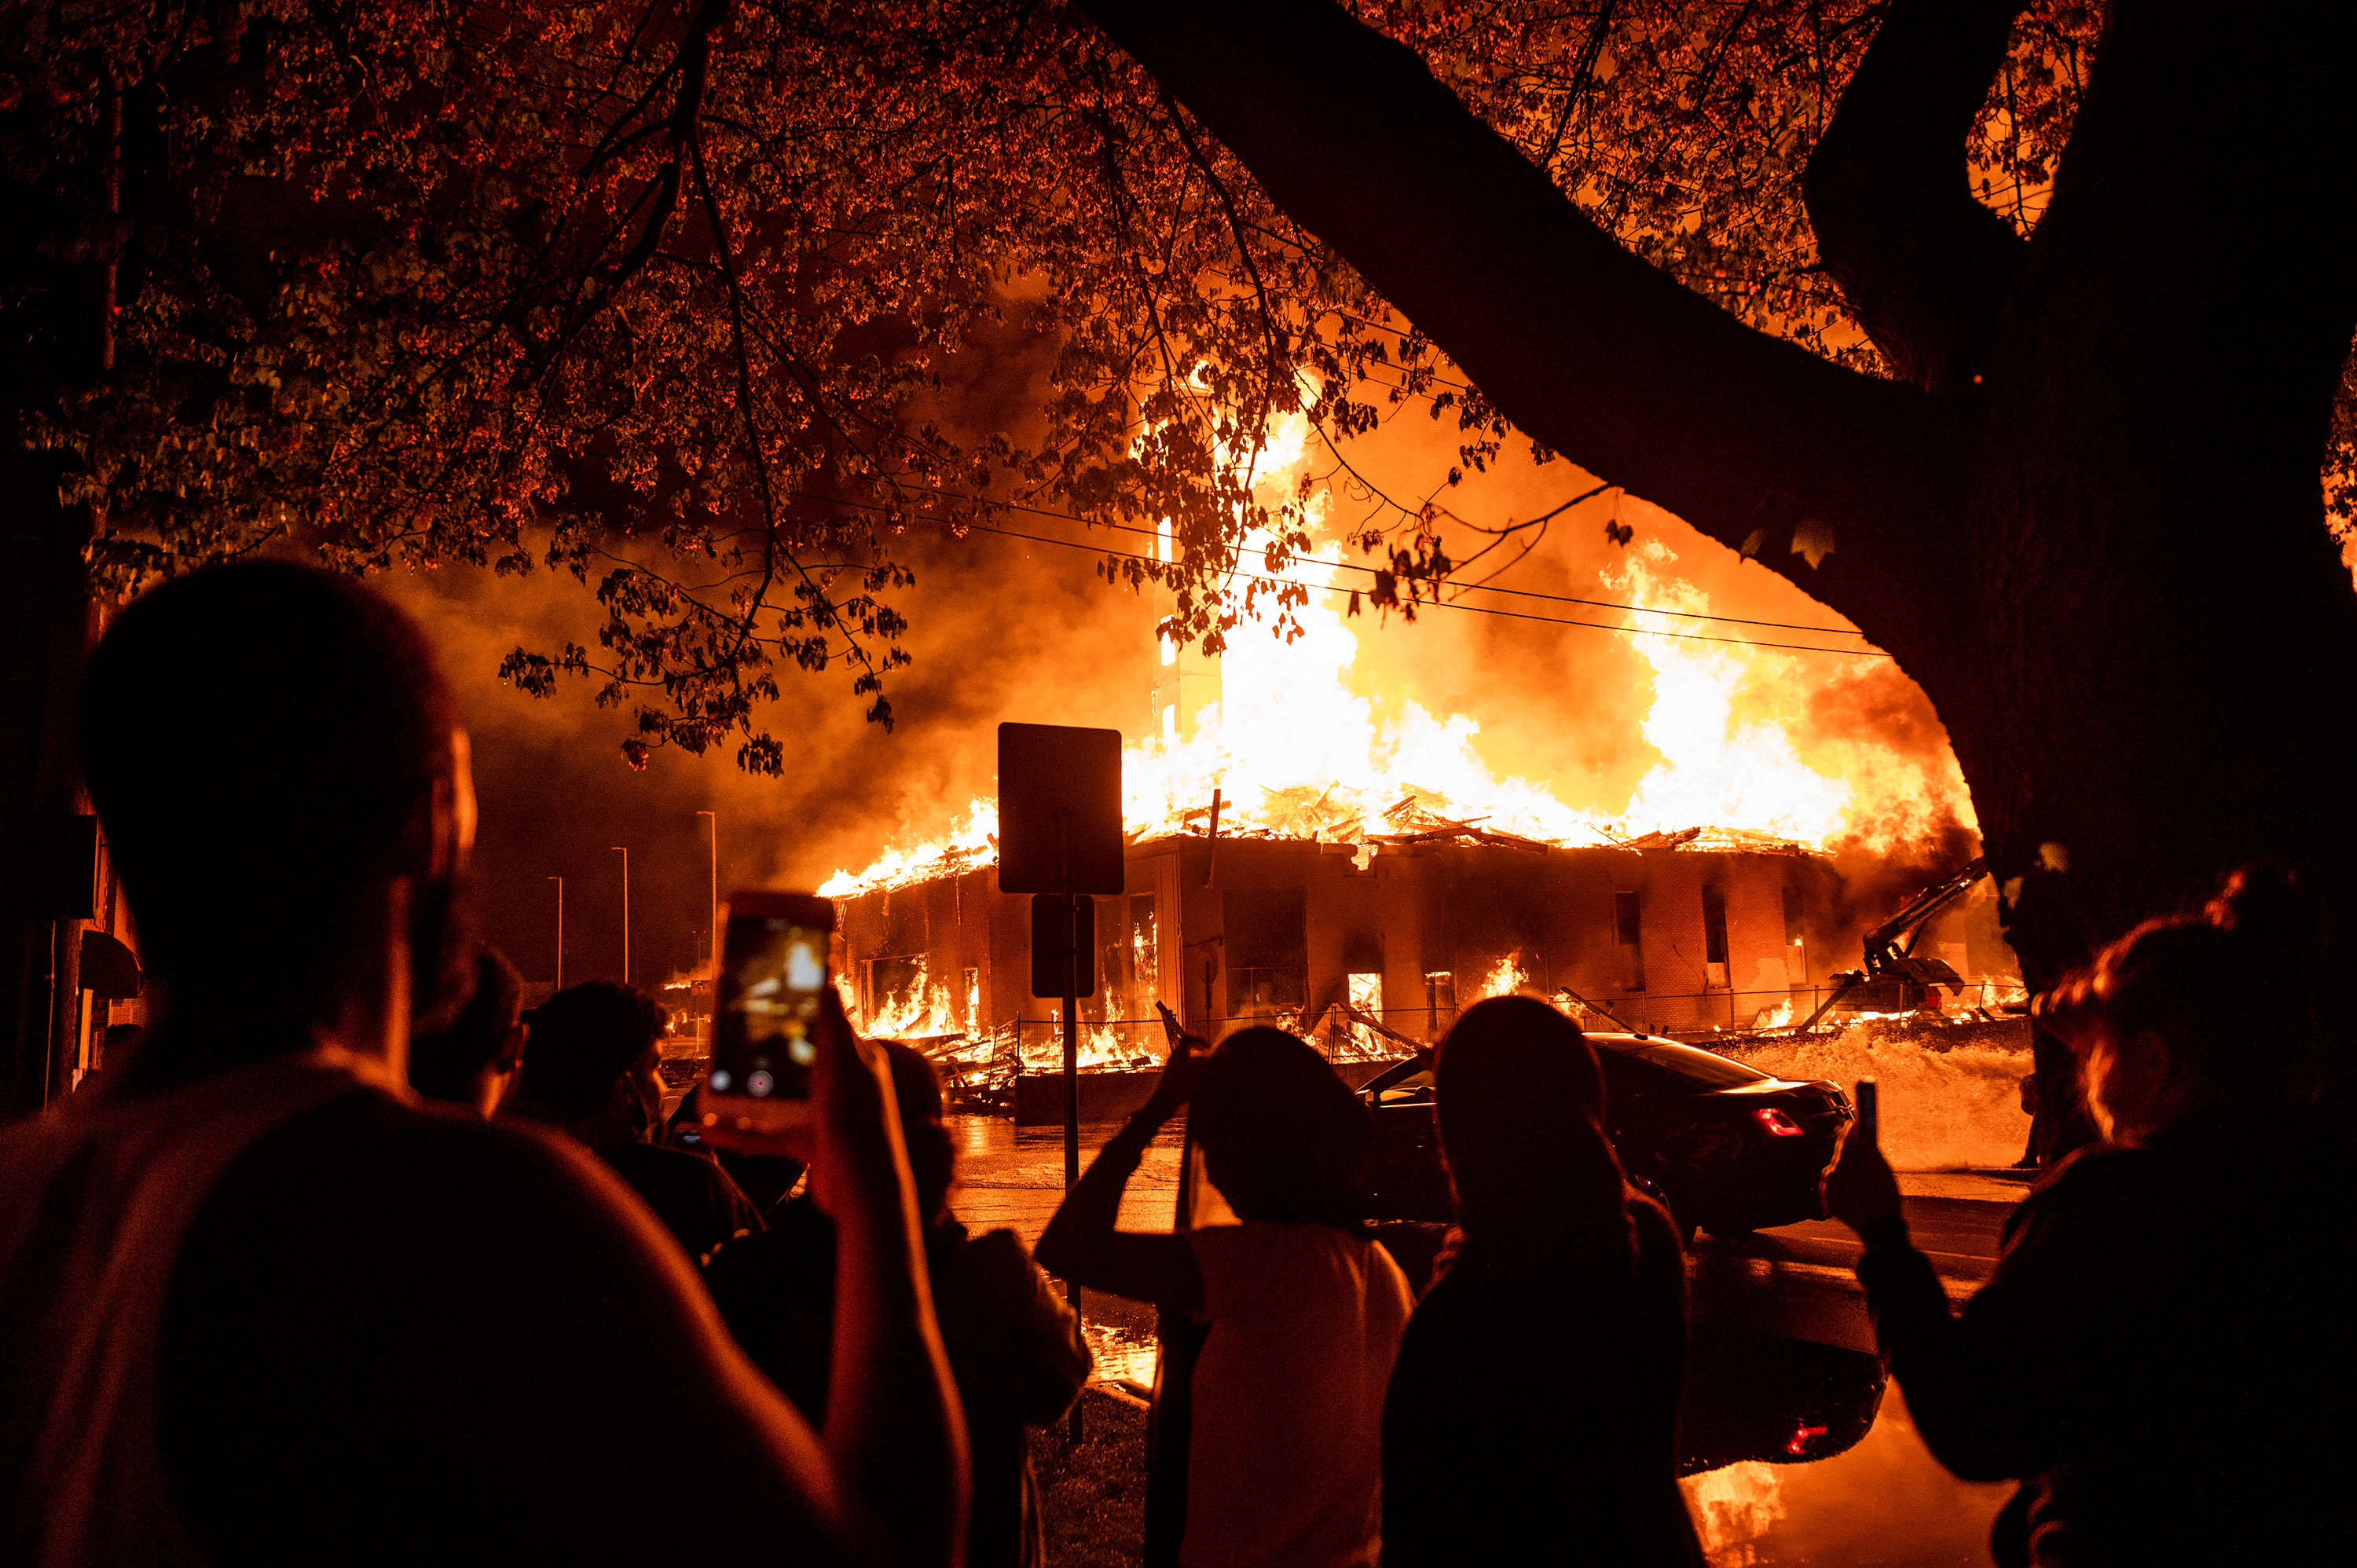 People look on as a construction site burns near the Third Police Precinct in Minneapolis, Minnesota, on May 27.